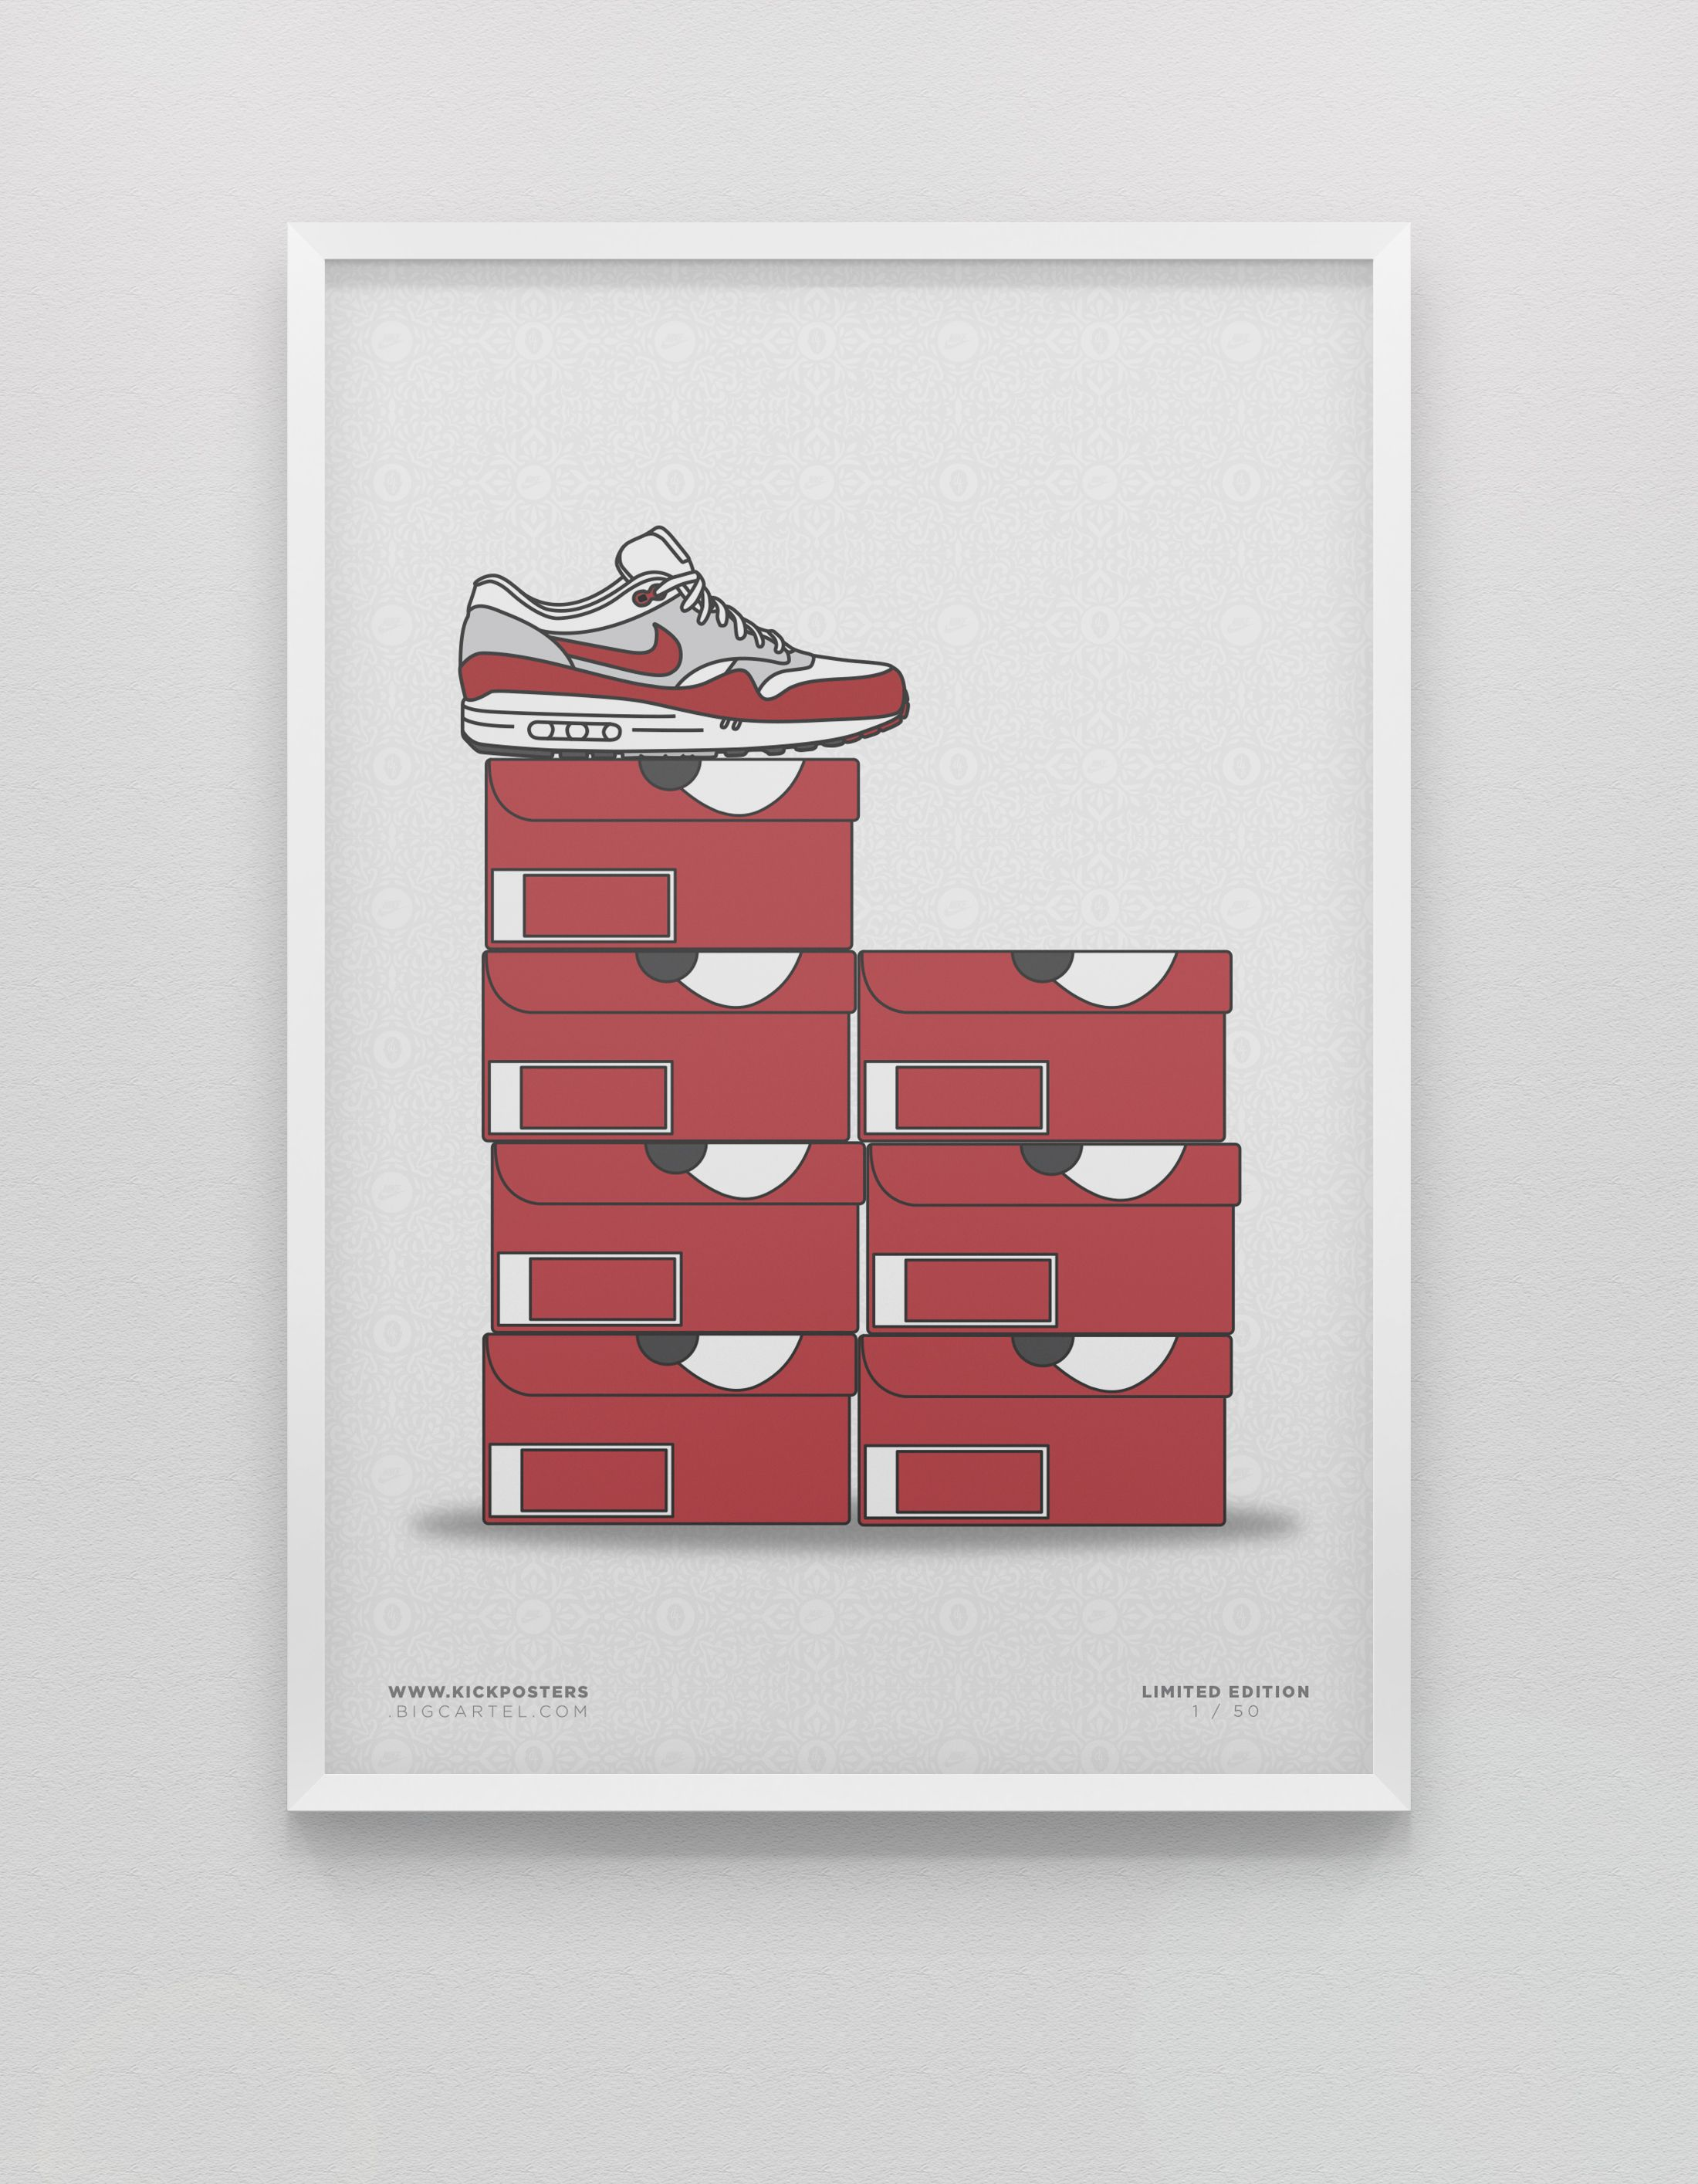 on sale a7586 e9ee4 Air Max 1 Og Stack Collection Poster. Available at kickposters.bigcartel.com